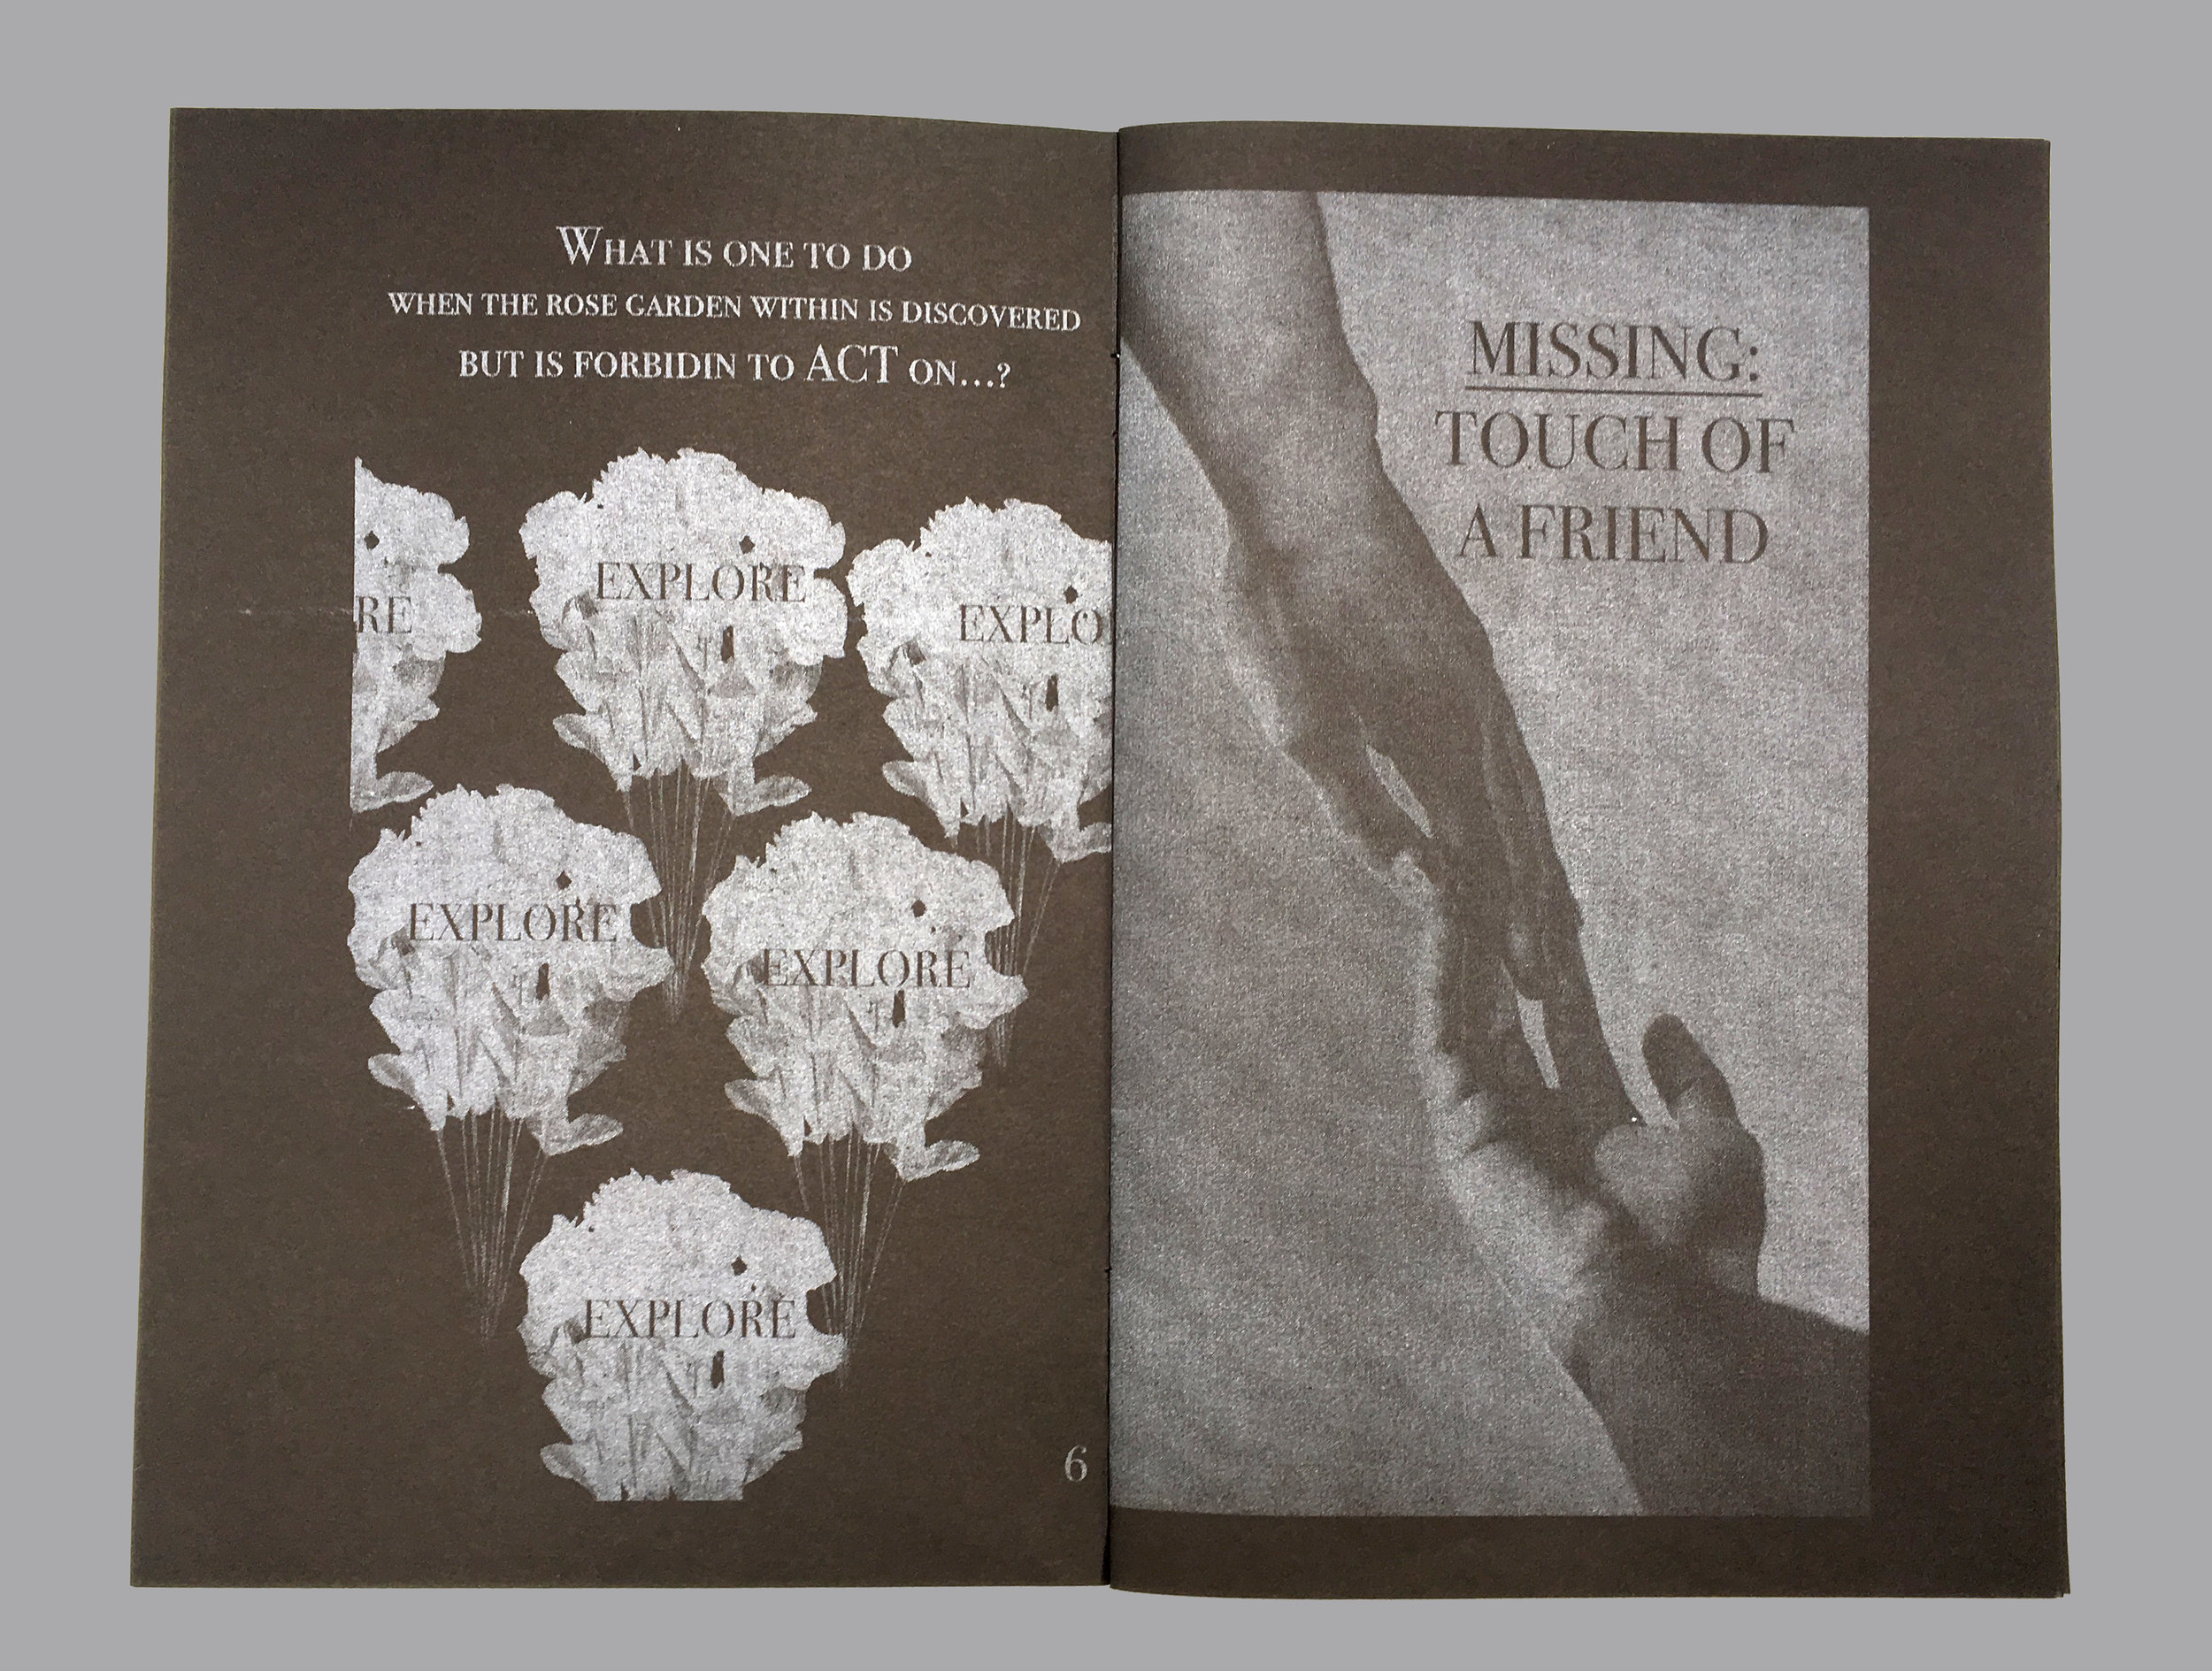 Copy of Appearing V.S. Disappearing